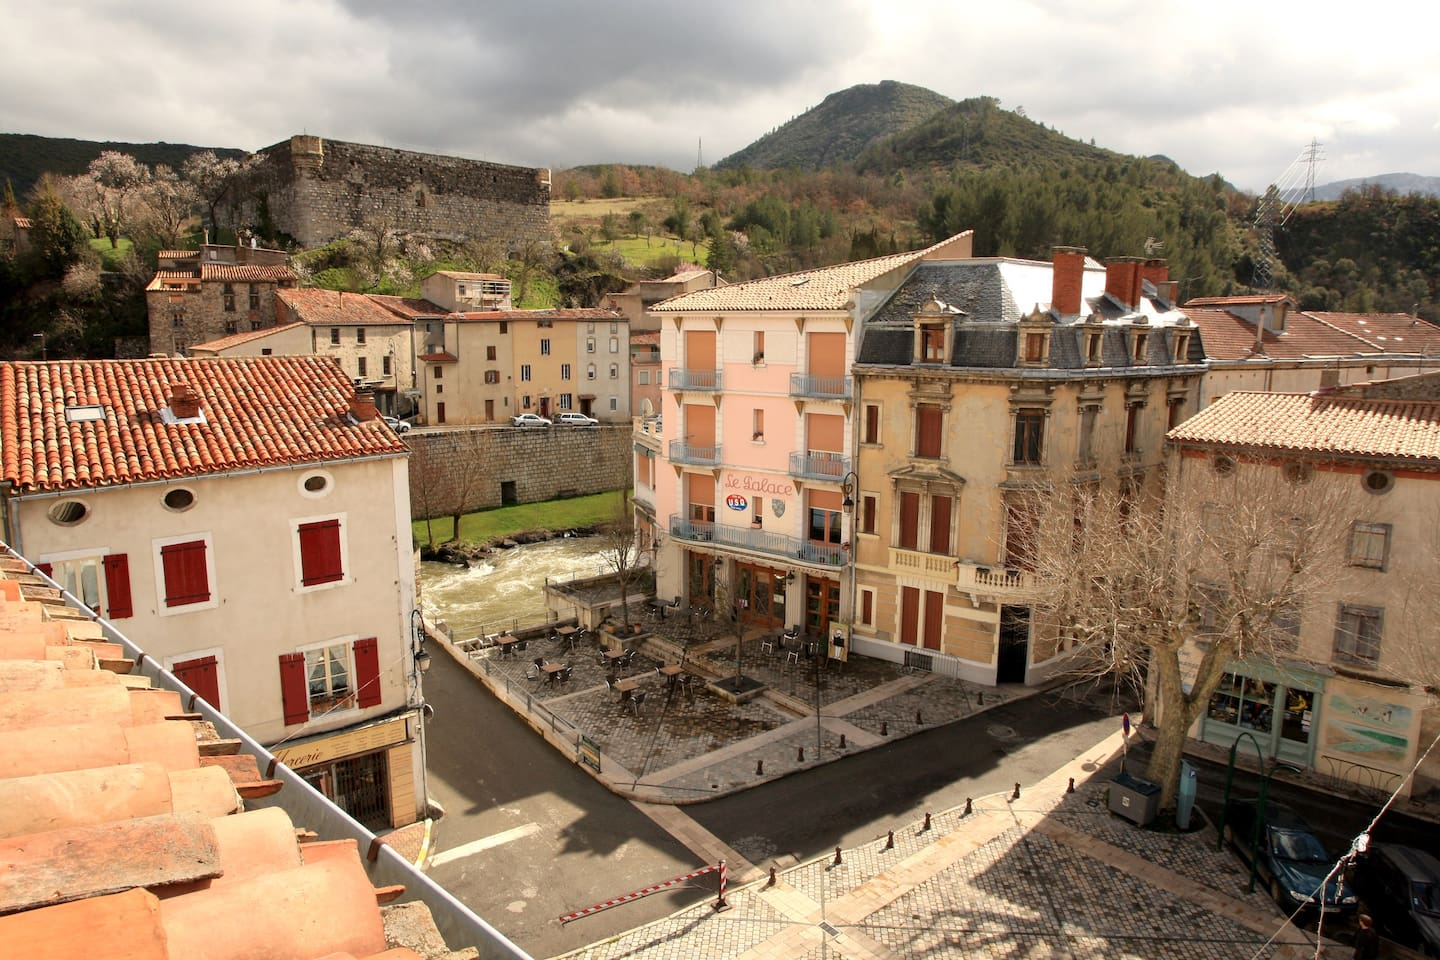 view from the roof terrace showing chateau and river